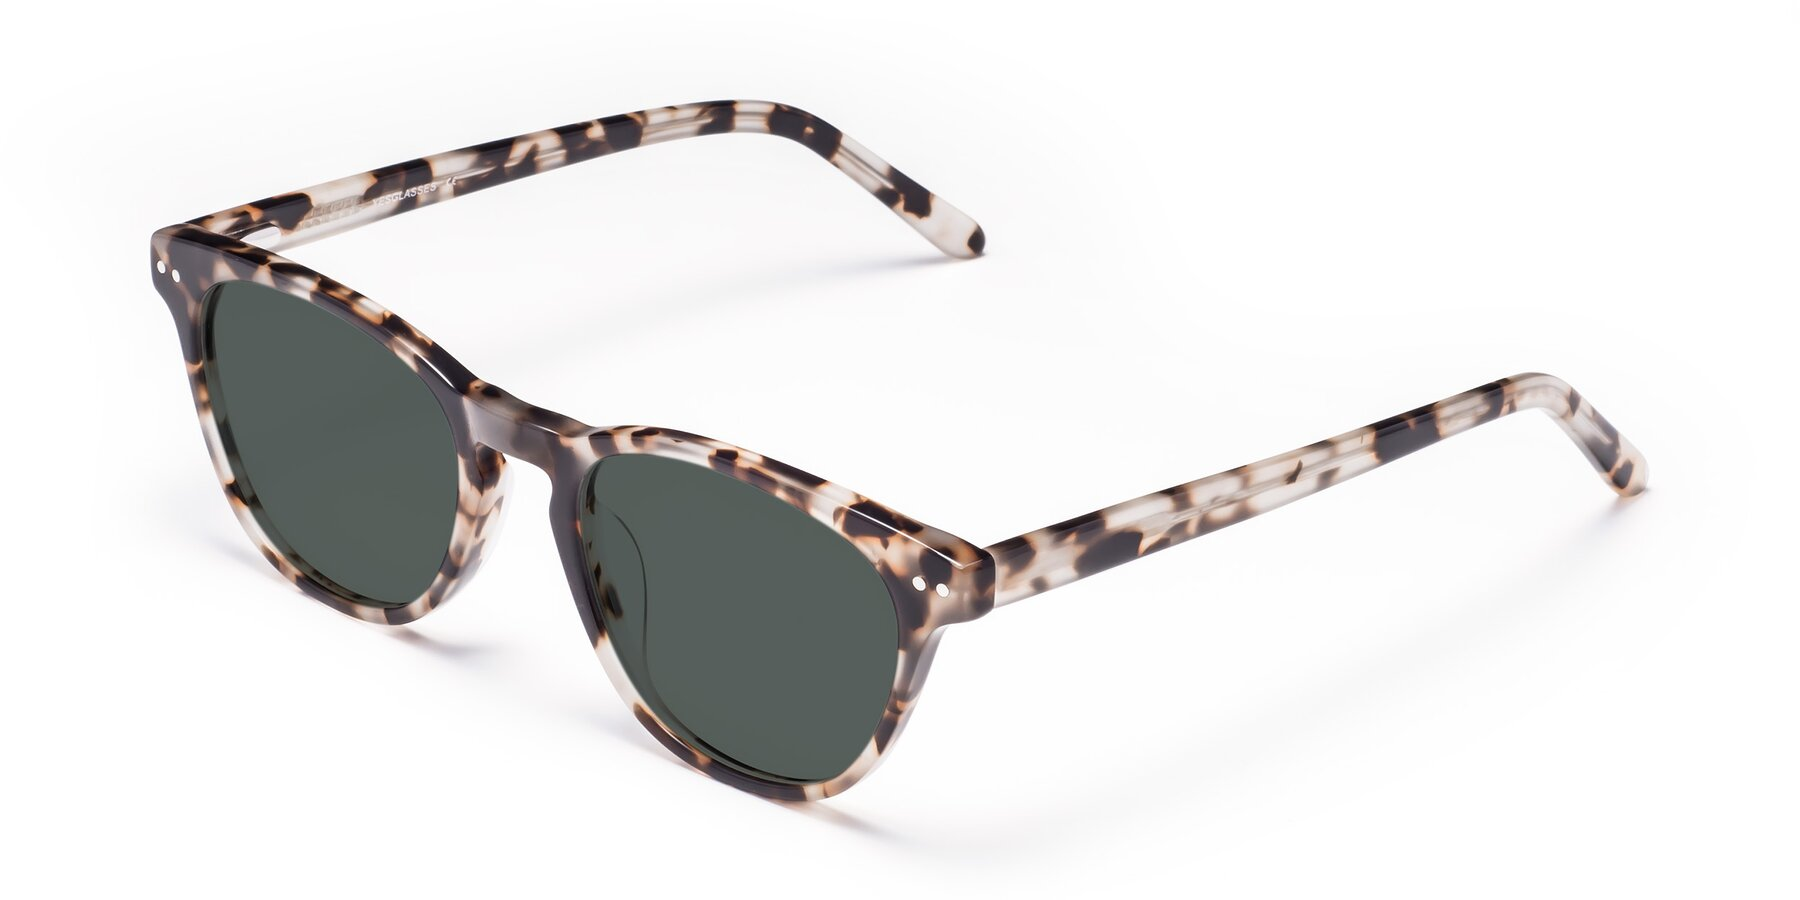 Angle of Blaze in Tortoise with Gray Polarized Lenses